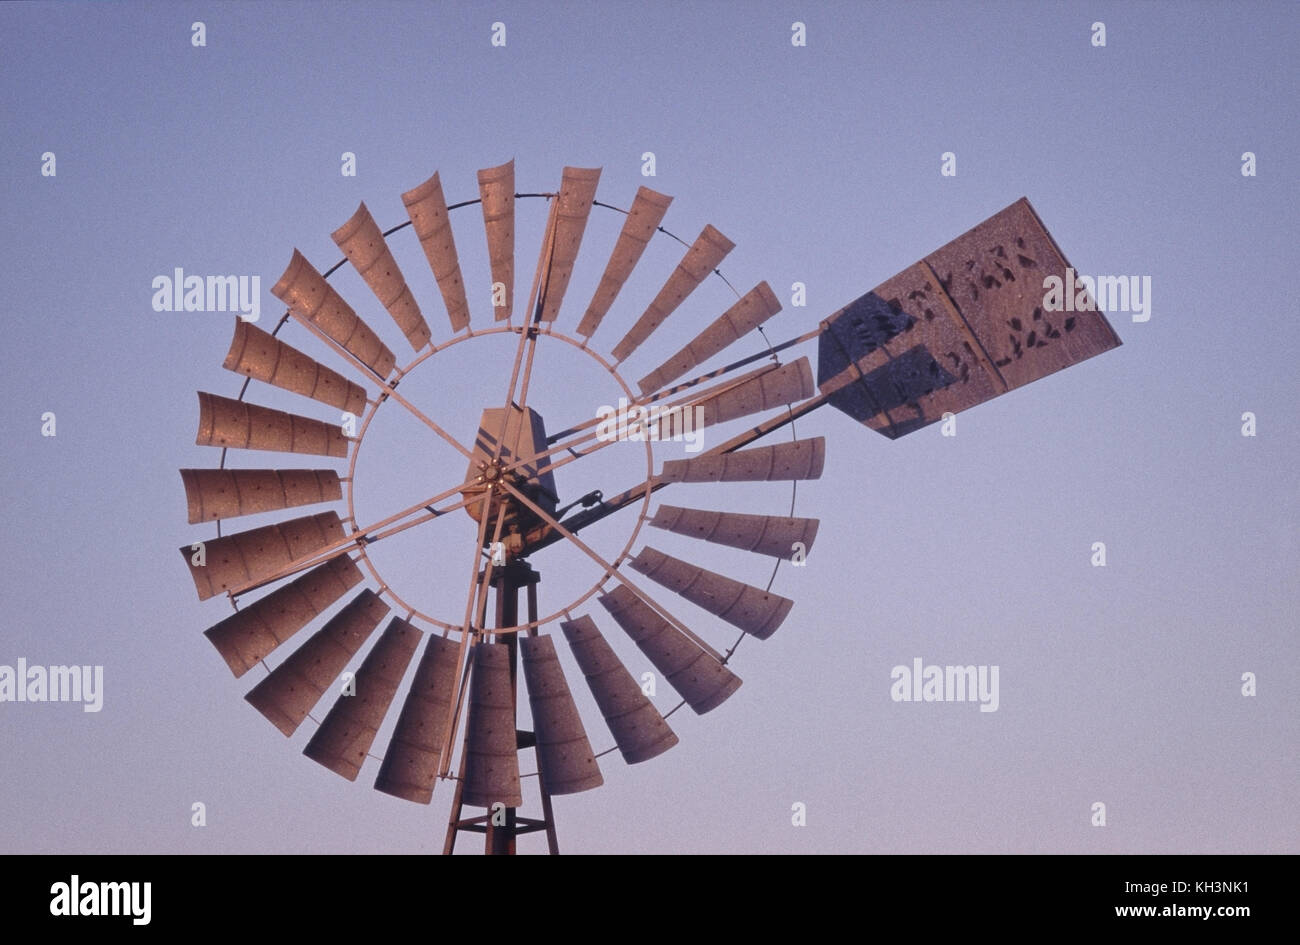 Close-up of windmill bore pump blades - Stock Image